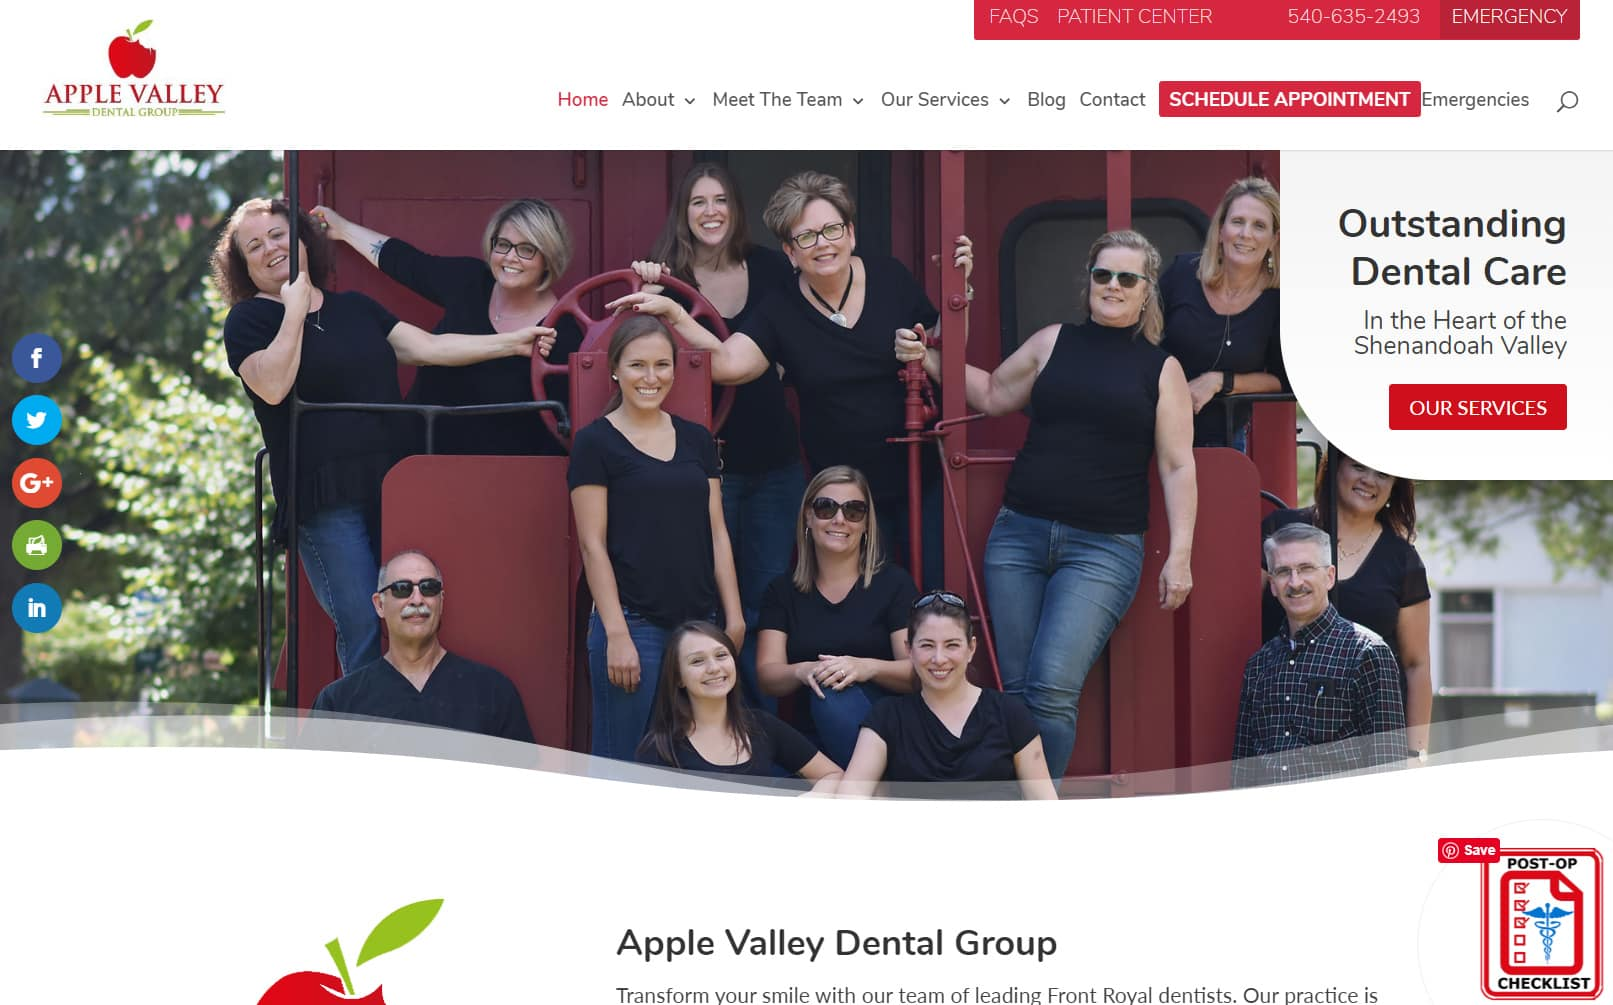 Apple Valley Dental